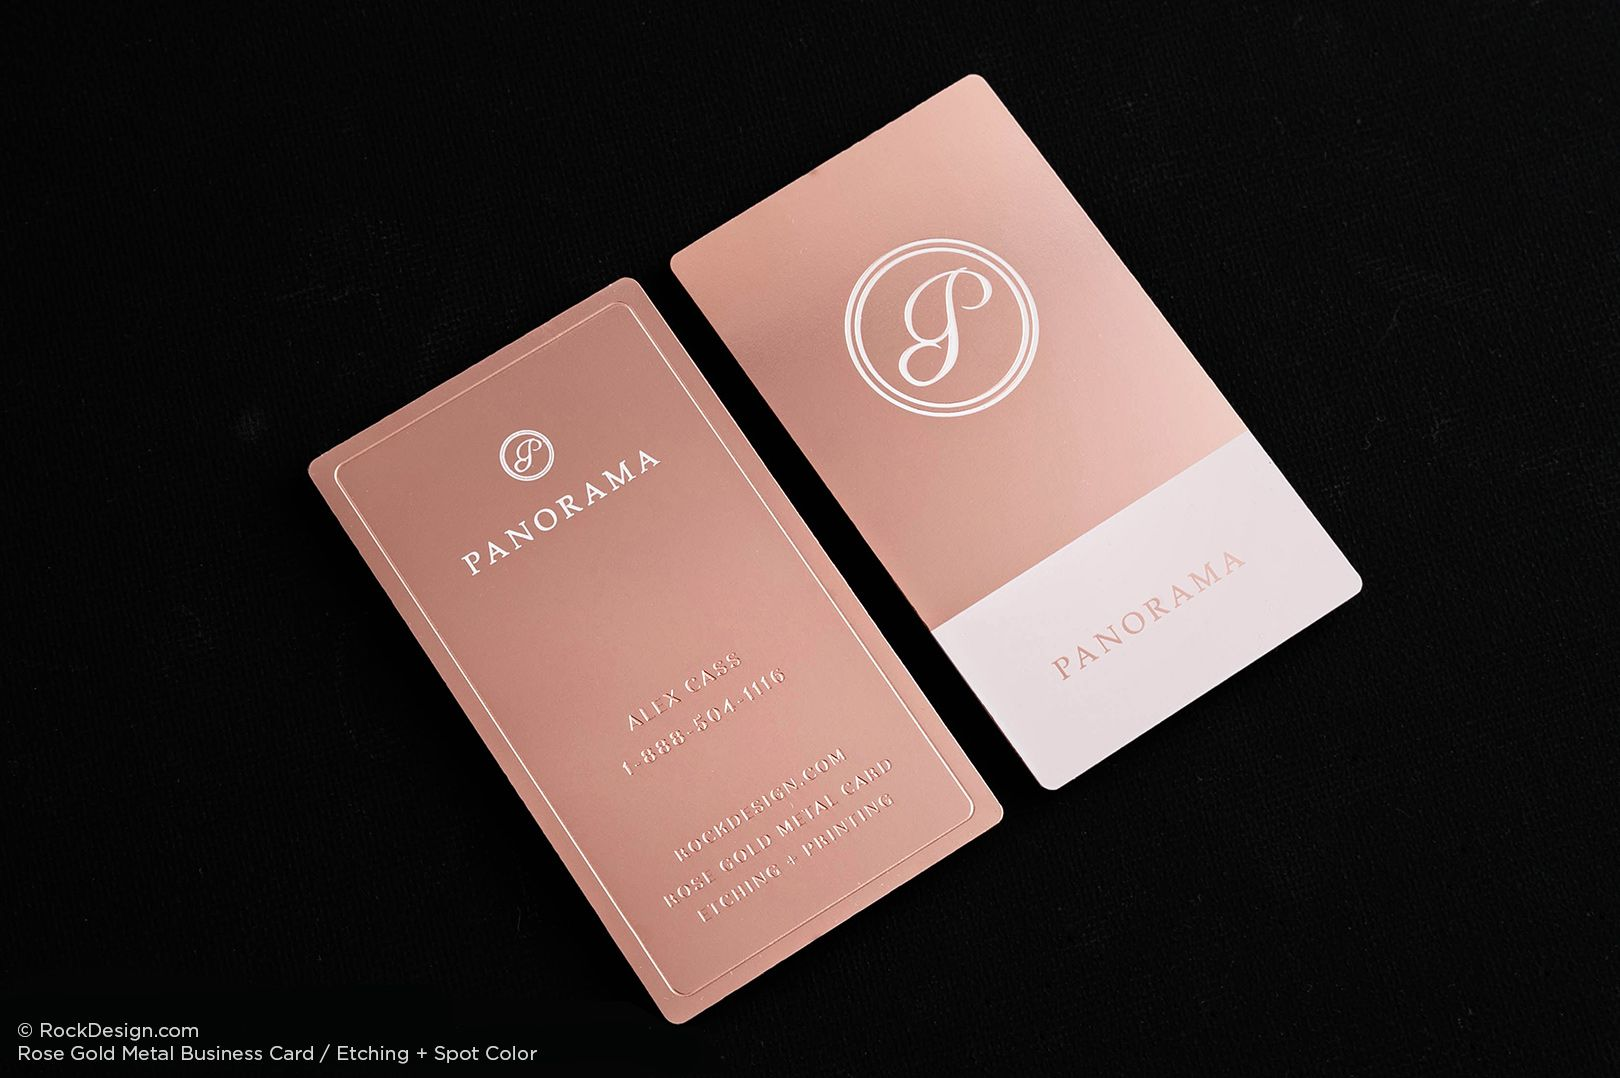 Beautiful And Elegant Rose Gold Metal Business Cards By